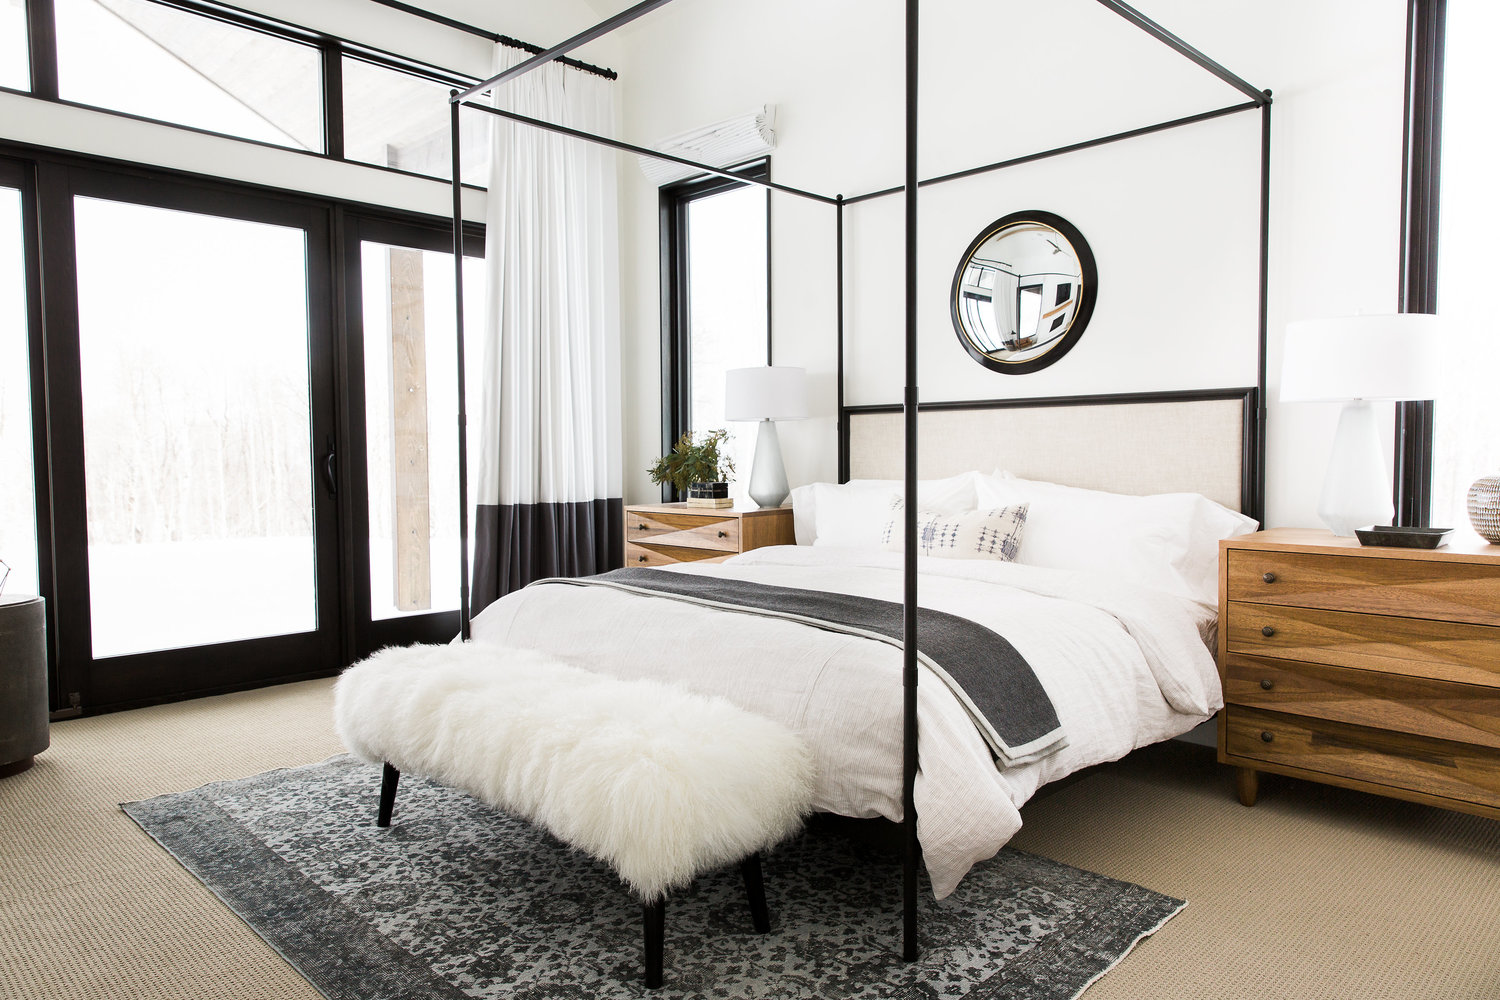 White bed with metal frame in bedroom